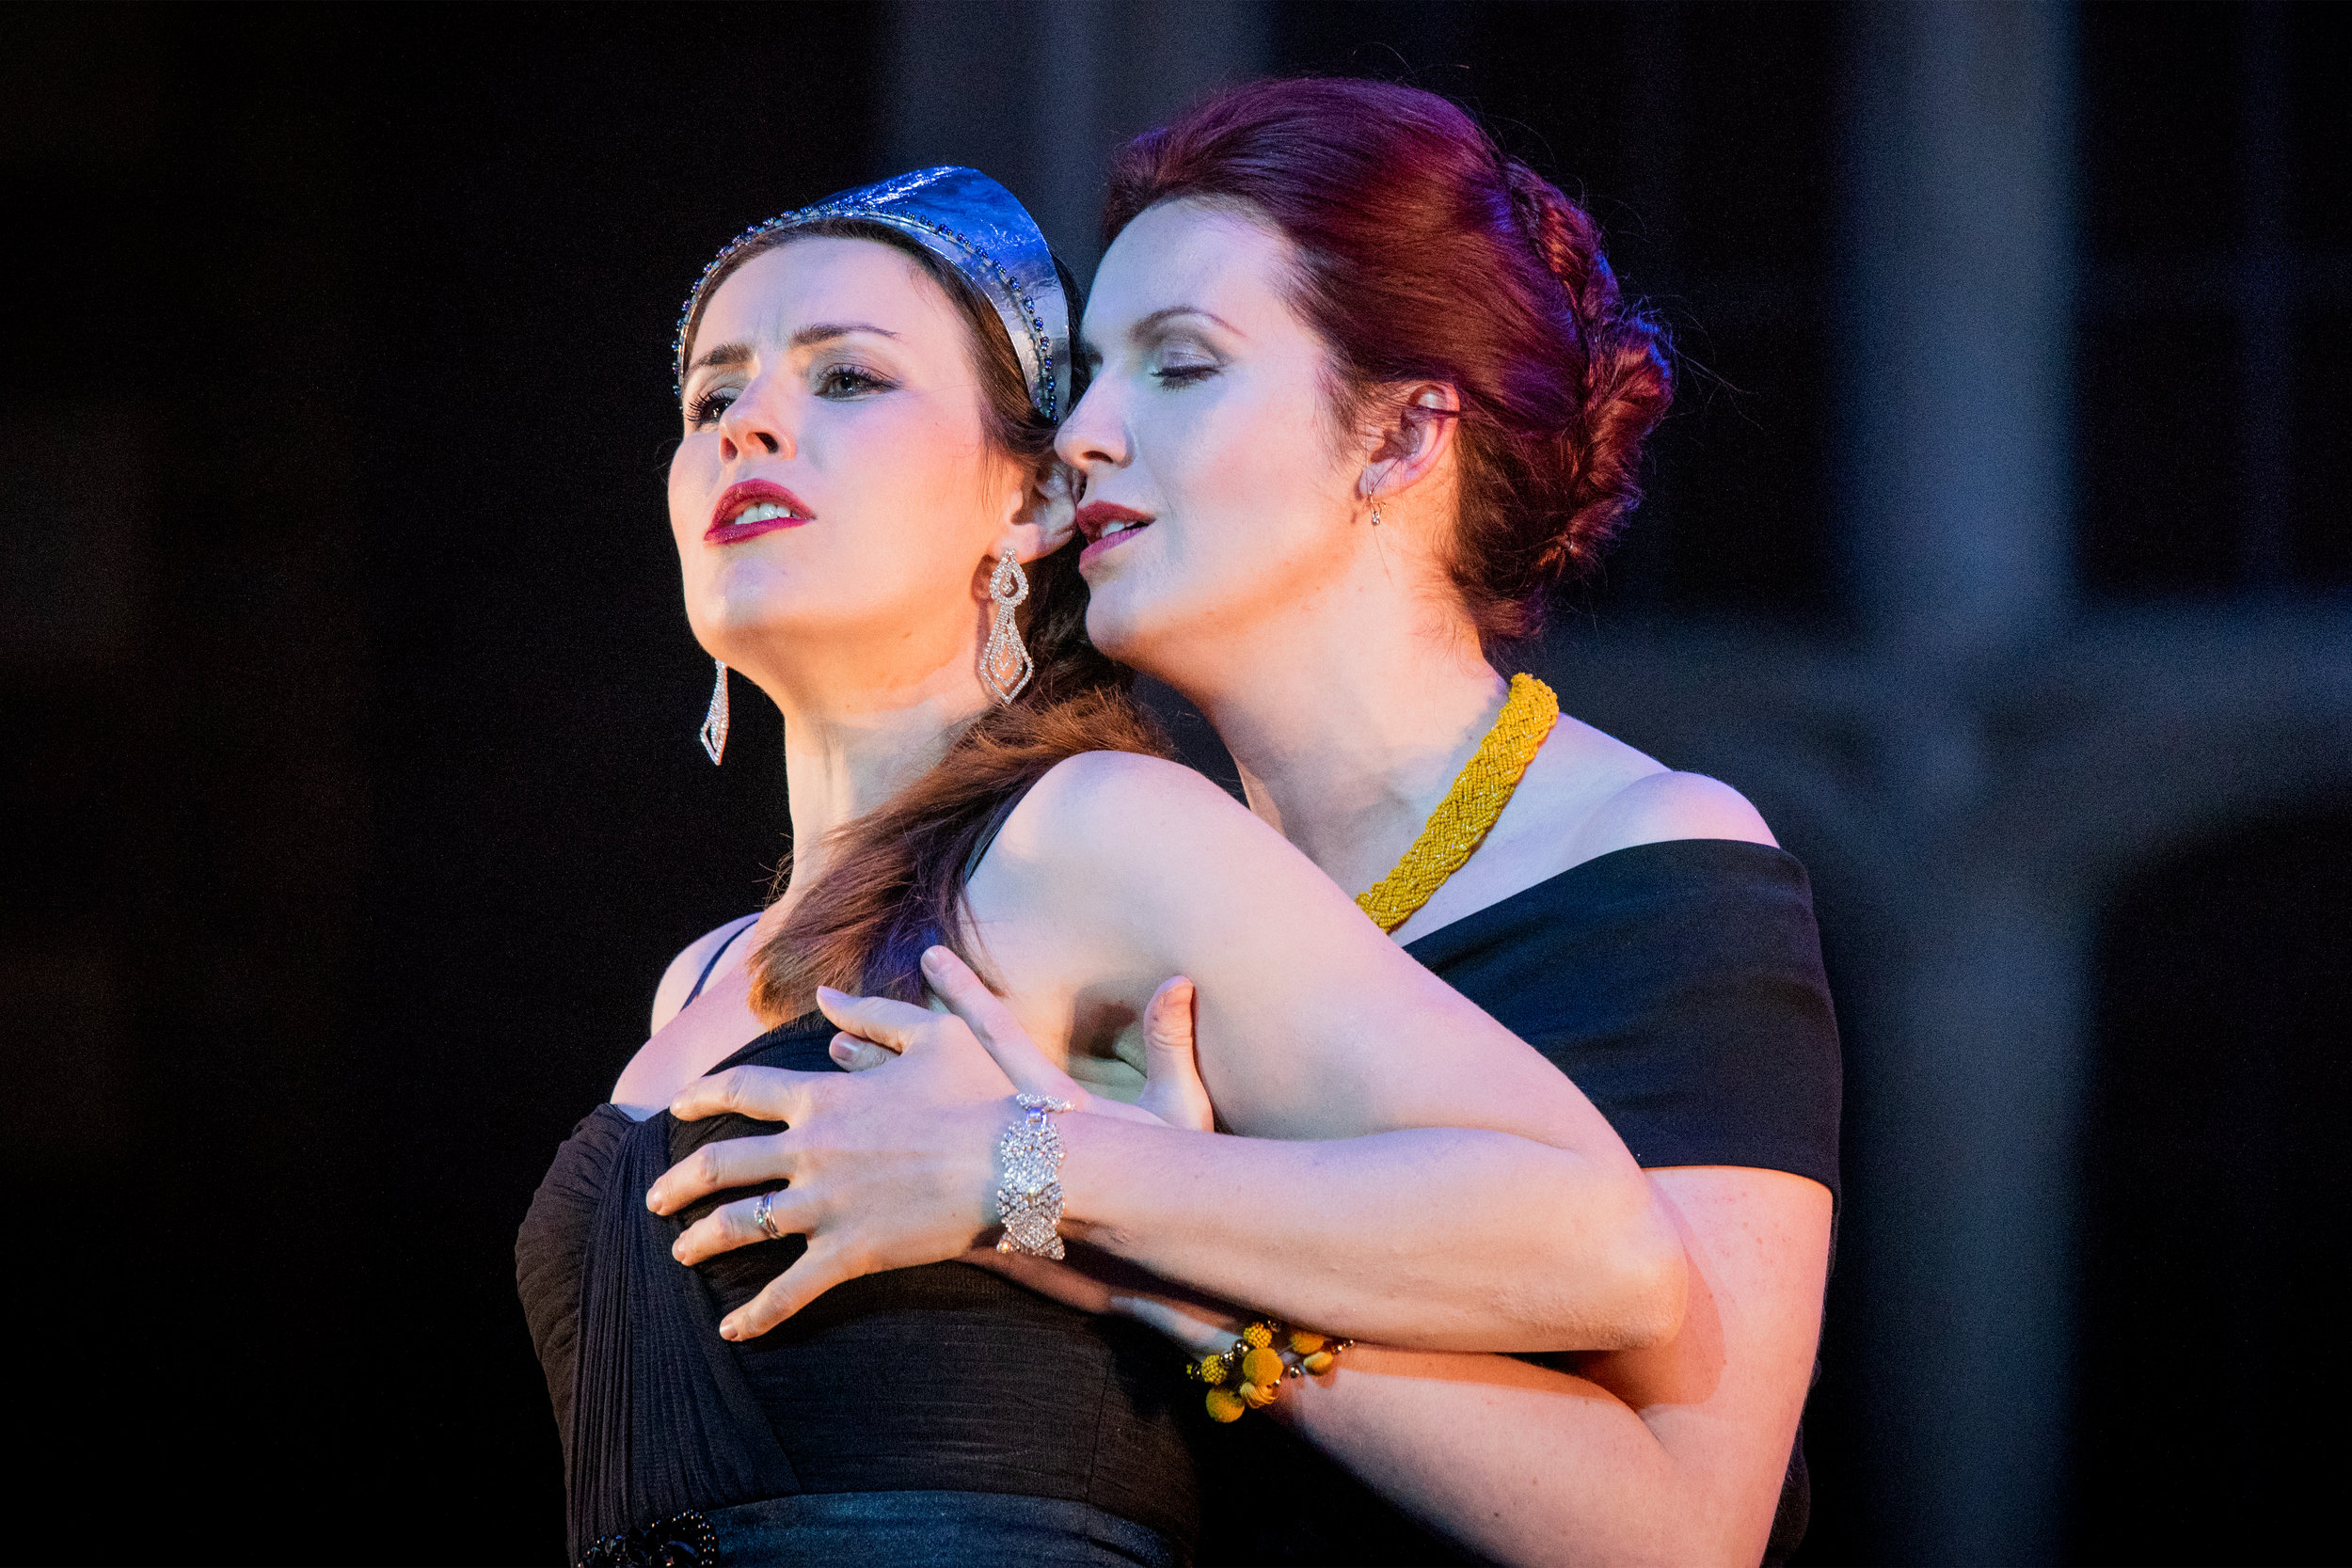 The SWAP'ra gala 2018- Scene from L'incorronazione di Poppea- Pictured with Anna Devin. (Photo by Robert Workman)